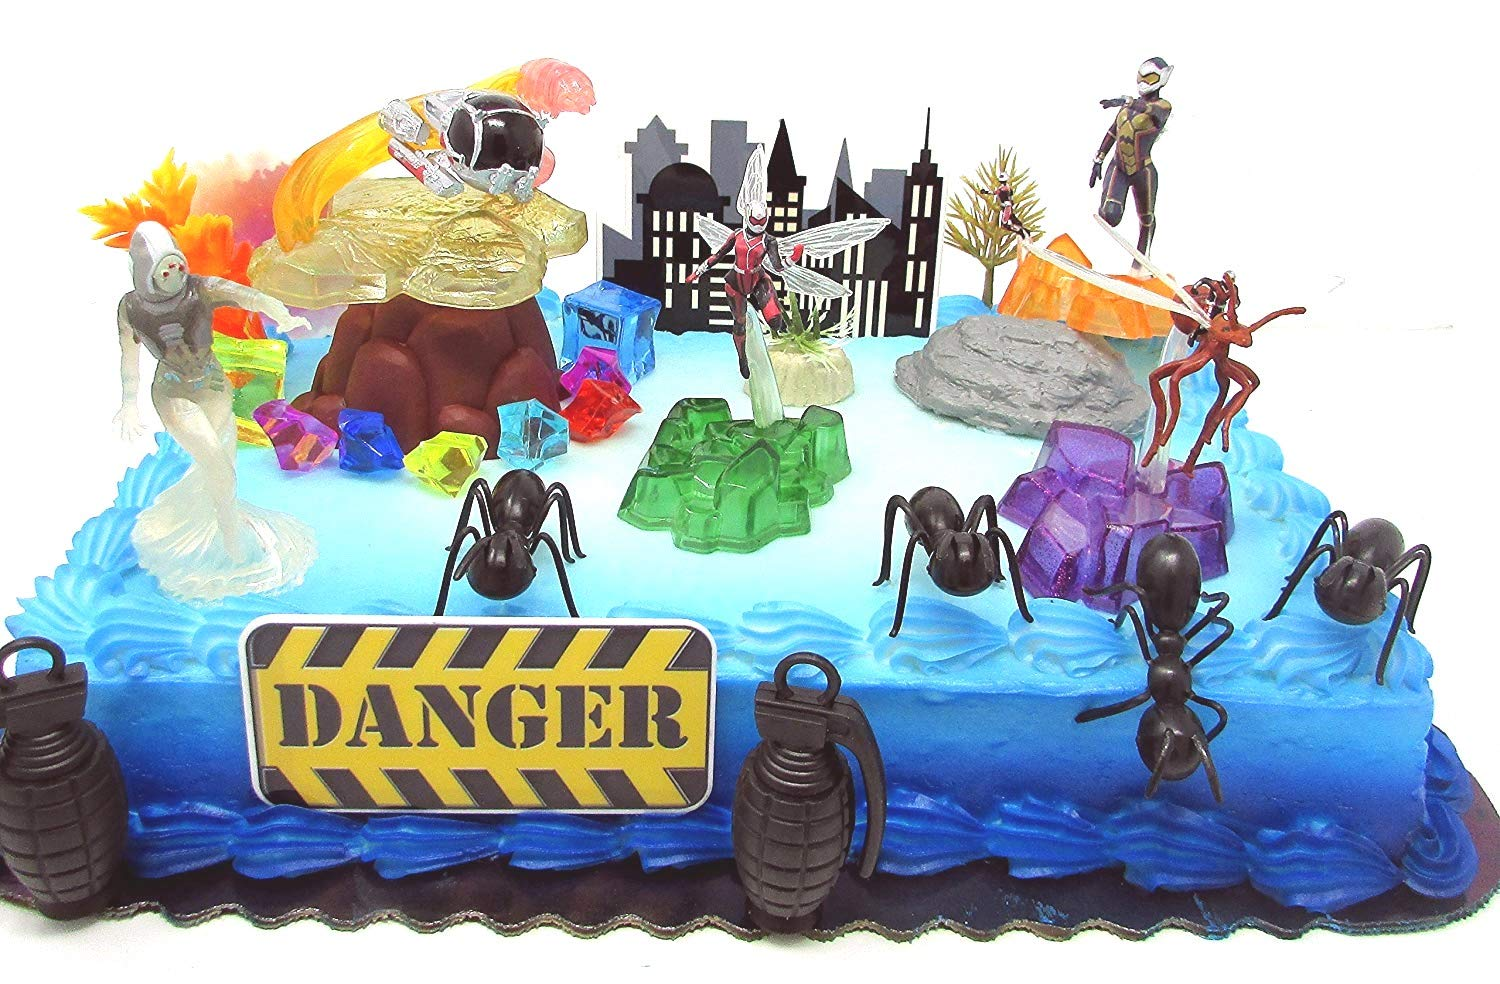 Amazon ANT MAN Deluxe Birthday Cake Topper Set Featuring Ant Man Figures And Decorative Themed Accessories Toys Games